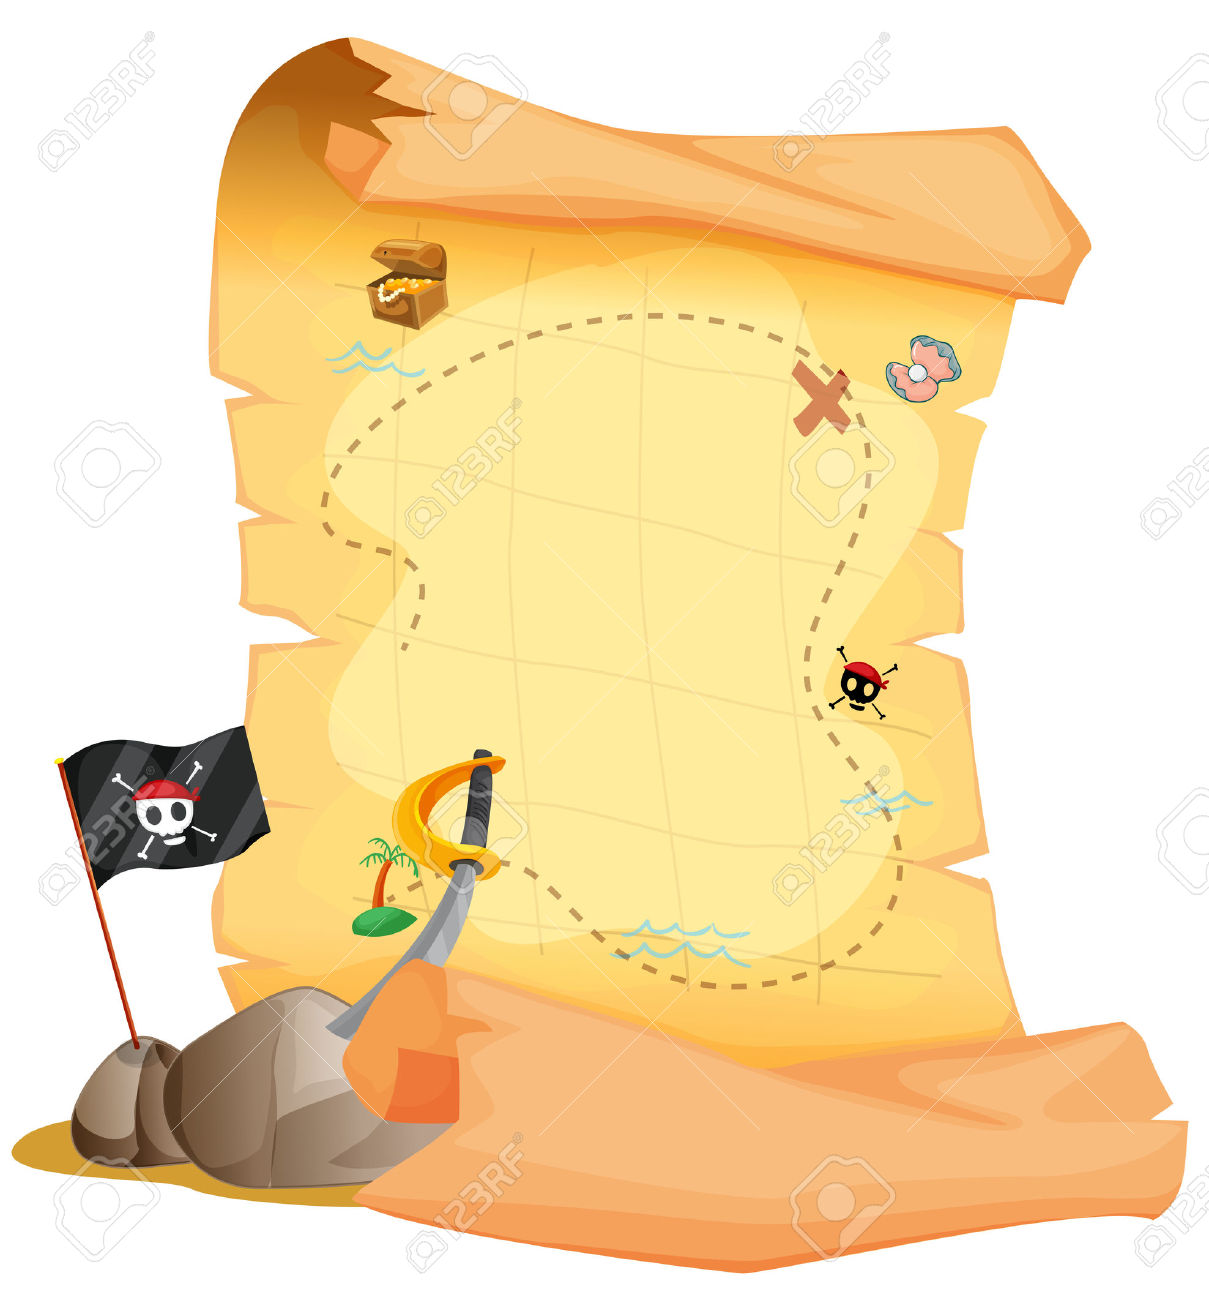 Blank Treasure Map Clipart.